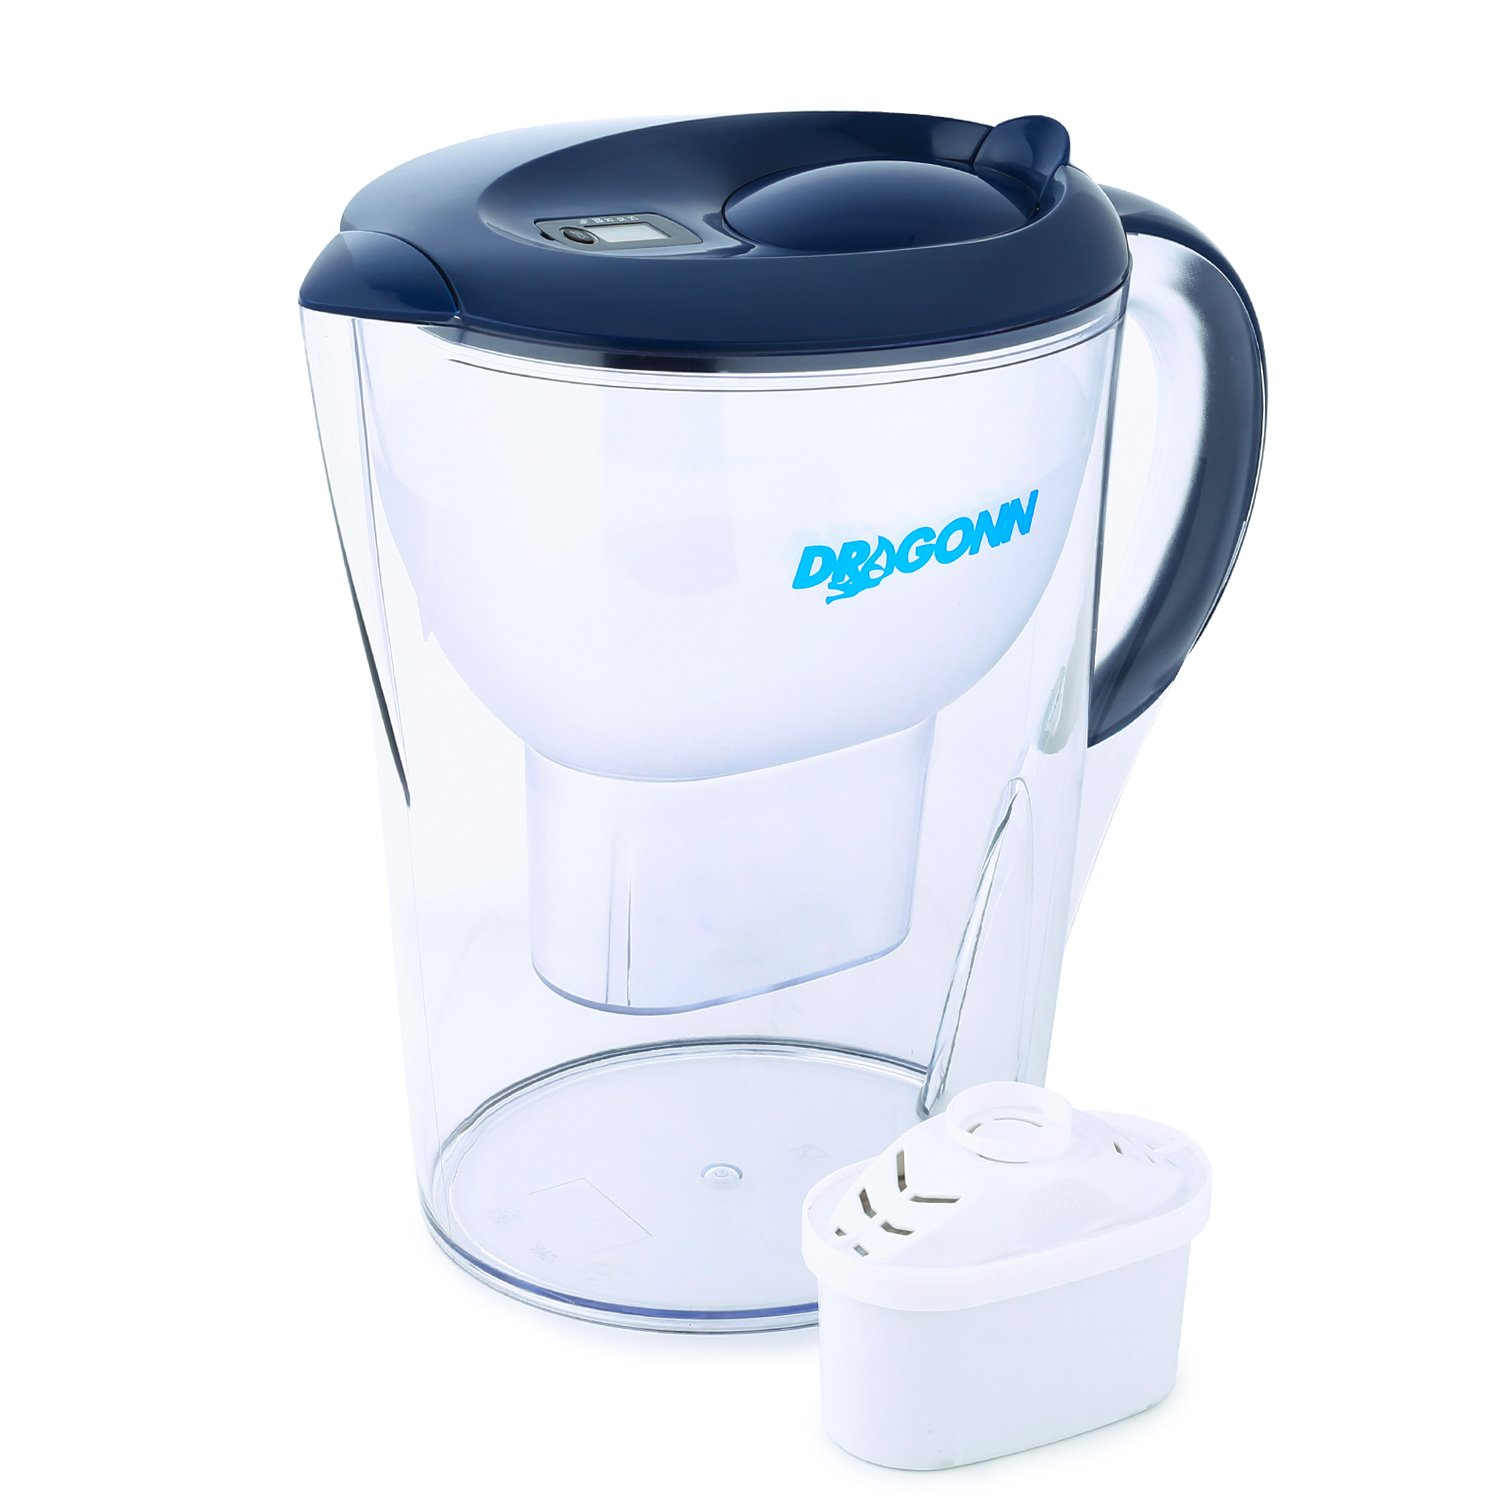 DRAGONN Alkaline Water Pitcher - 3.5 Liters, Free Filter Included, Removes Lead, Chlorine, Copper and more, PH 8.5-9.5 Enhanced 2019 Model